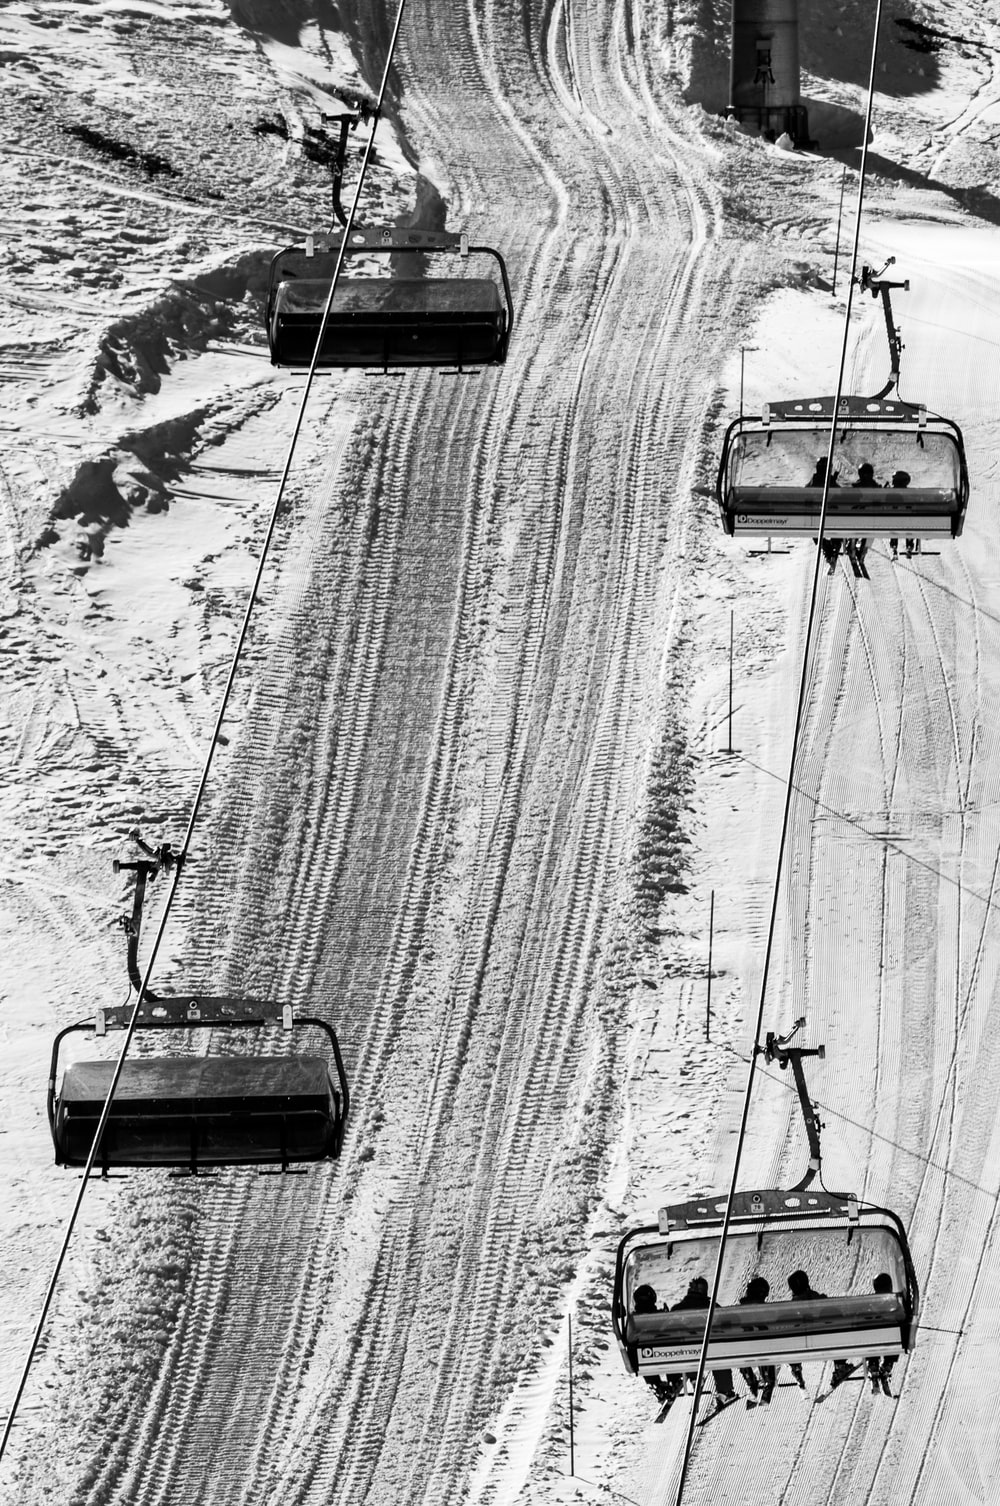 grayscale photo of bird's eye view of cable trains